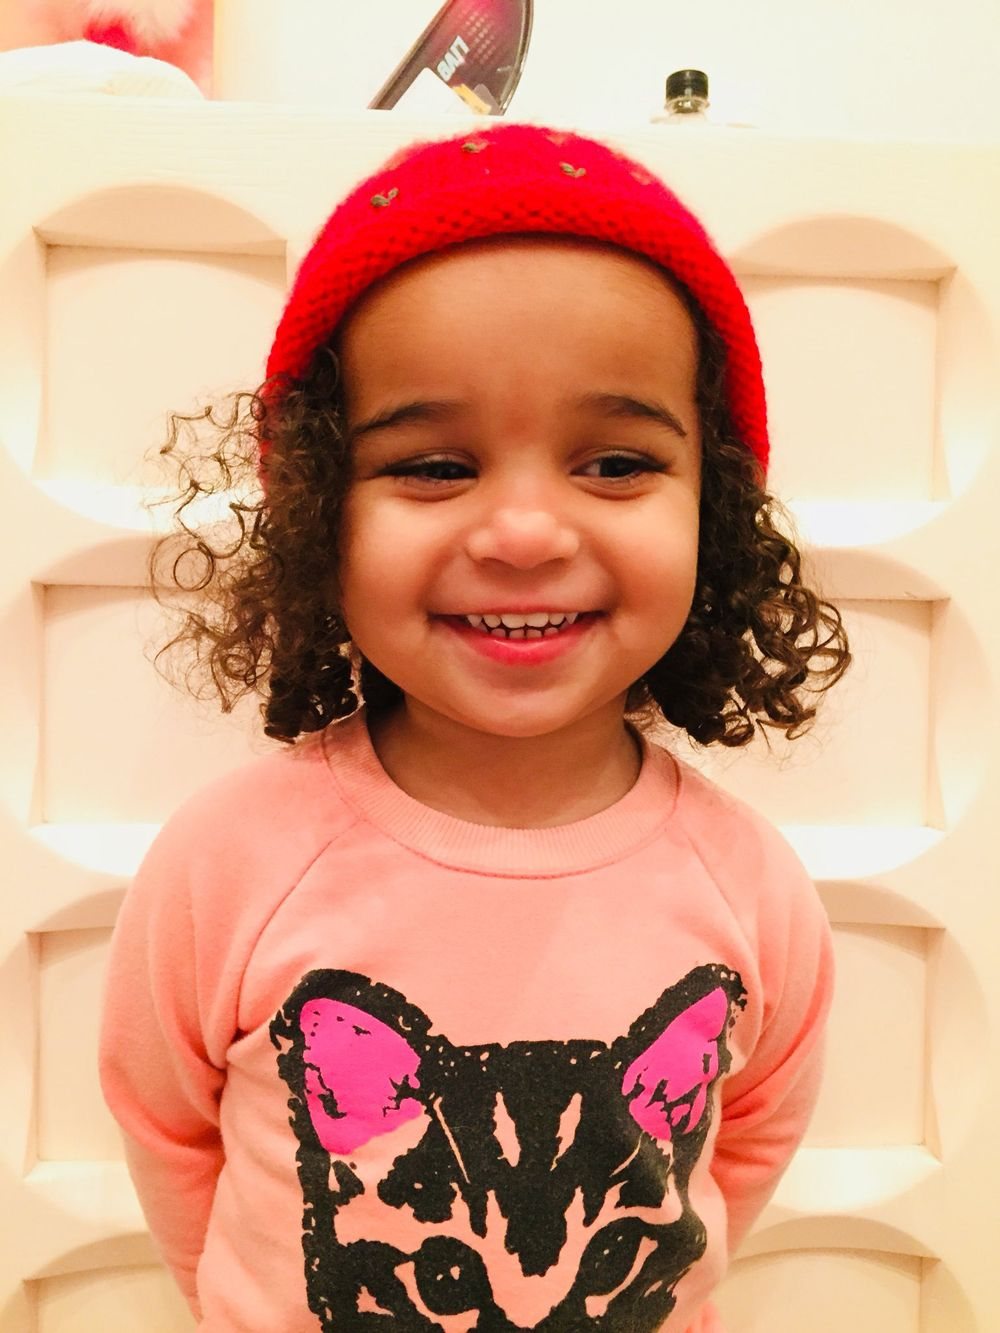 ba88e3a8305a3 Dream looks all grown up in her adorable red beanie!(Courtesy of Twitter)  -- HollywoodLife